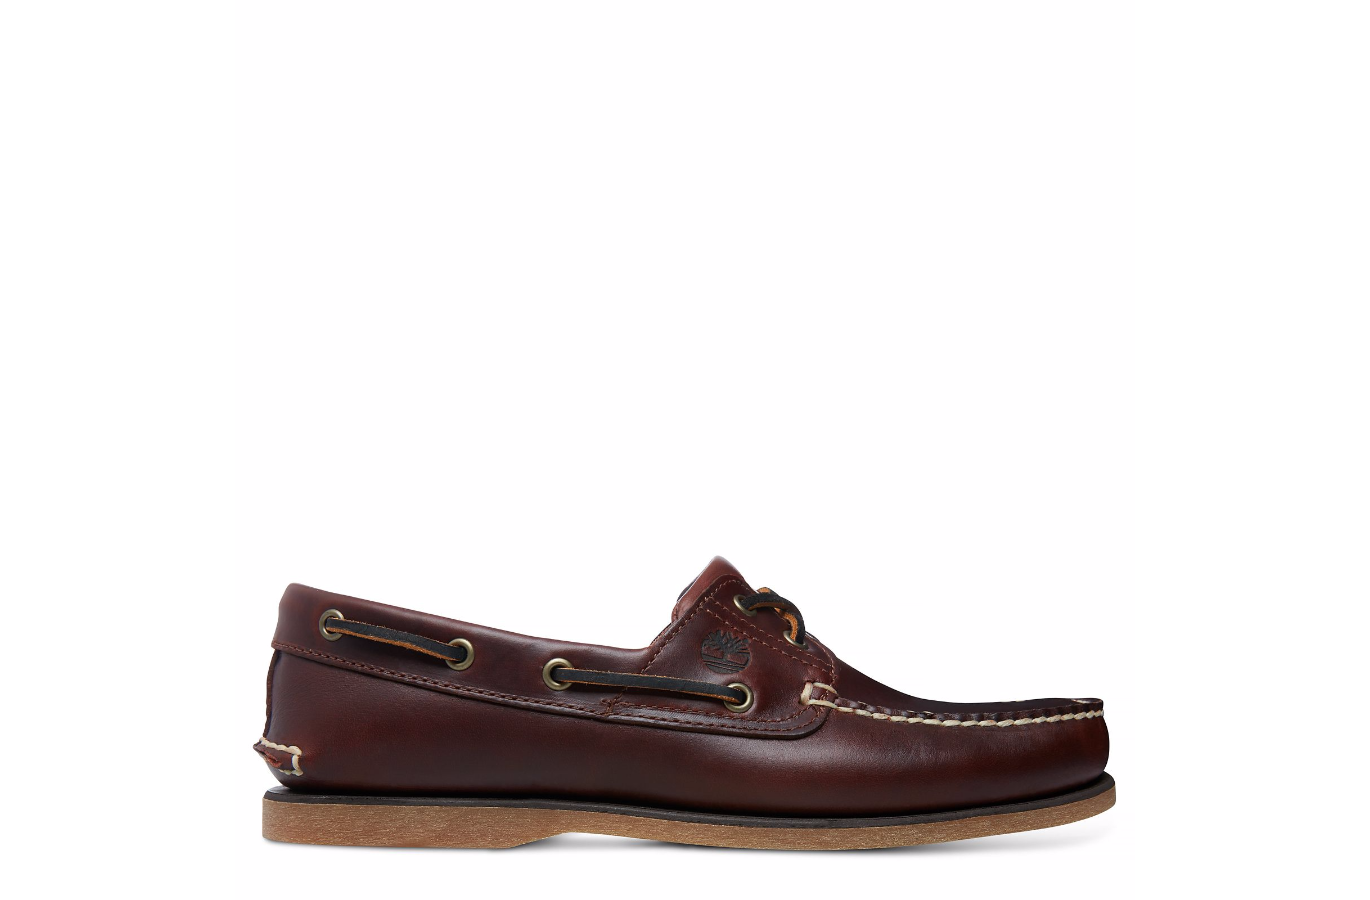 TIMBERLAND 25077 CLASSIC ICON 2-EYE BOAT ROOTBEER UOMO - MOCASSINO ... ce603104560